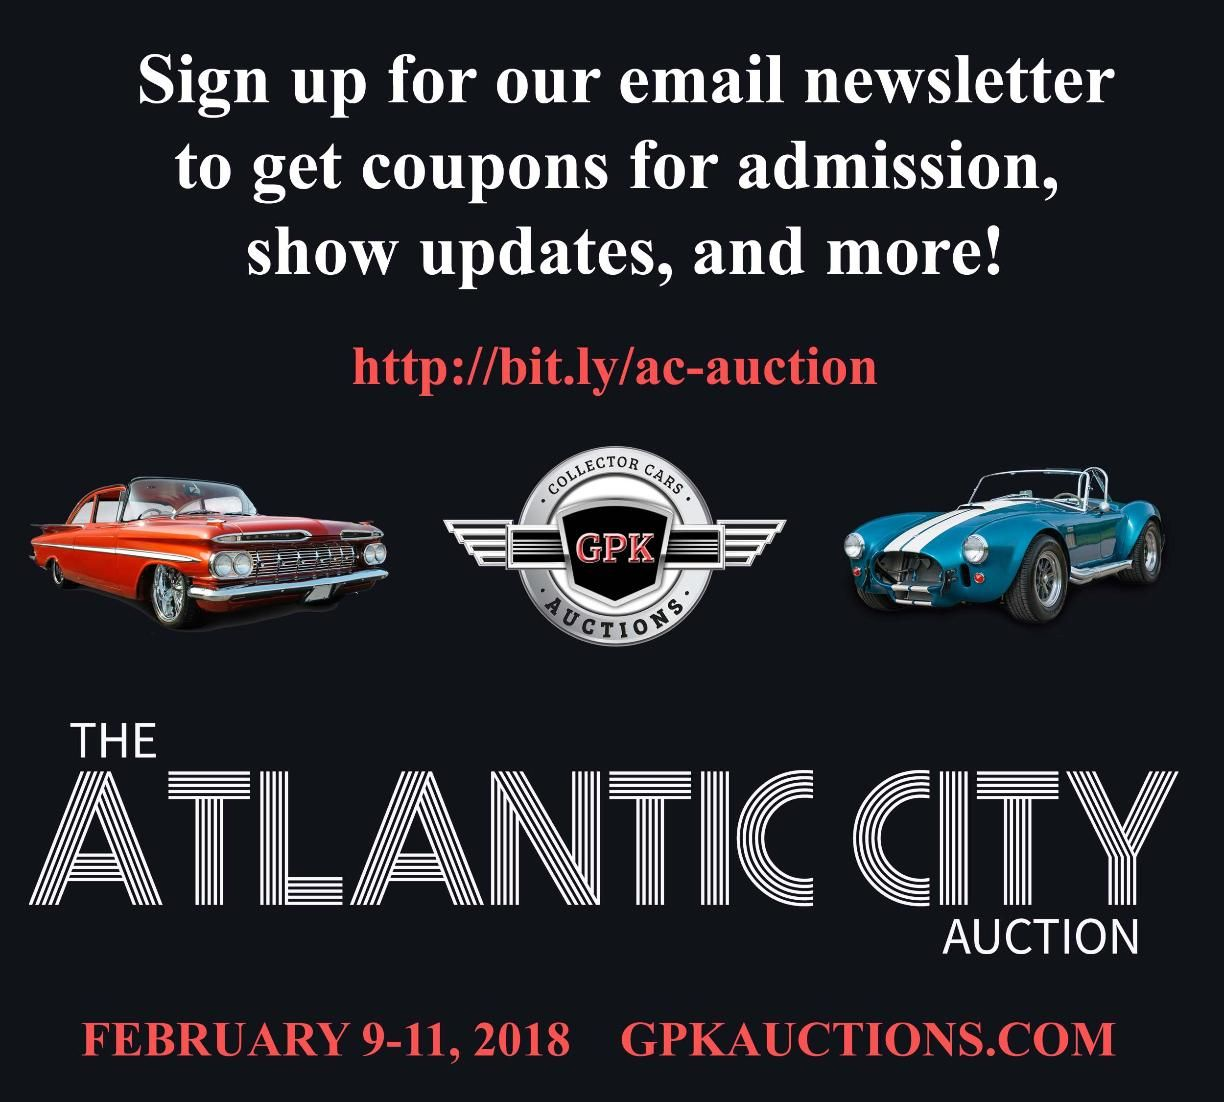 Sign Up For Emails To Get Coupons For Admission Show Updates And More Http Bit Ly Ac Auction Atlantic City Email Form Auction